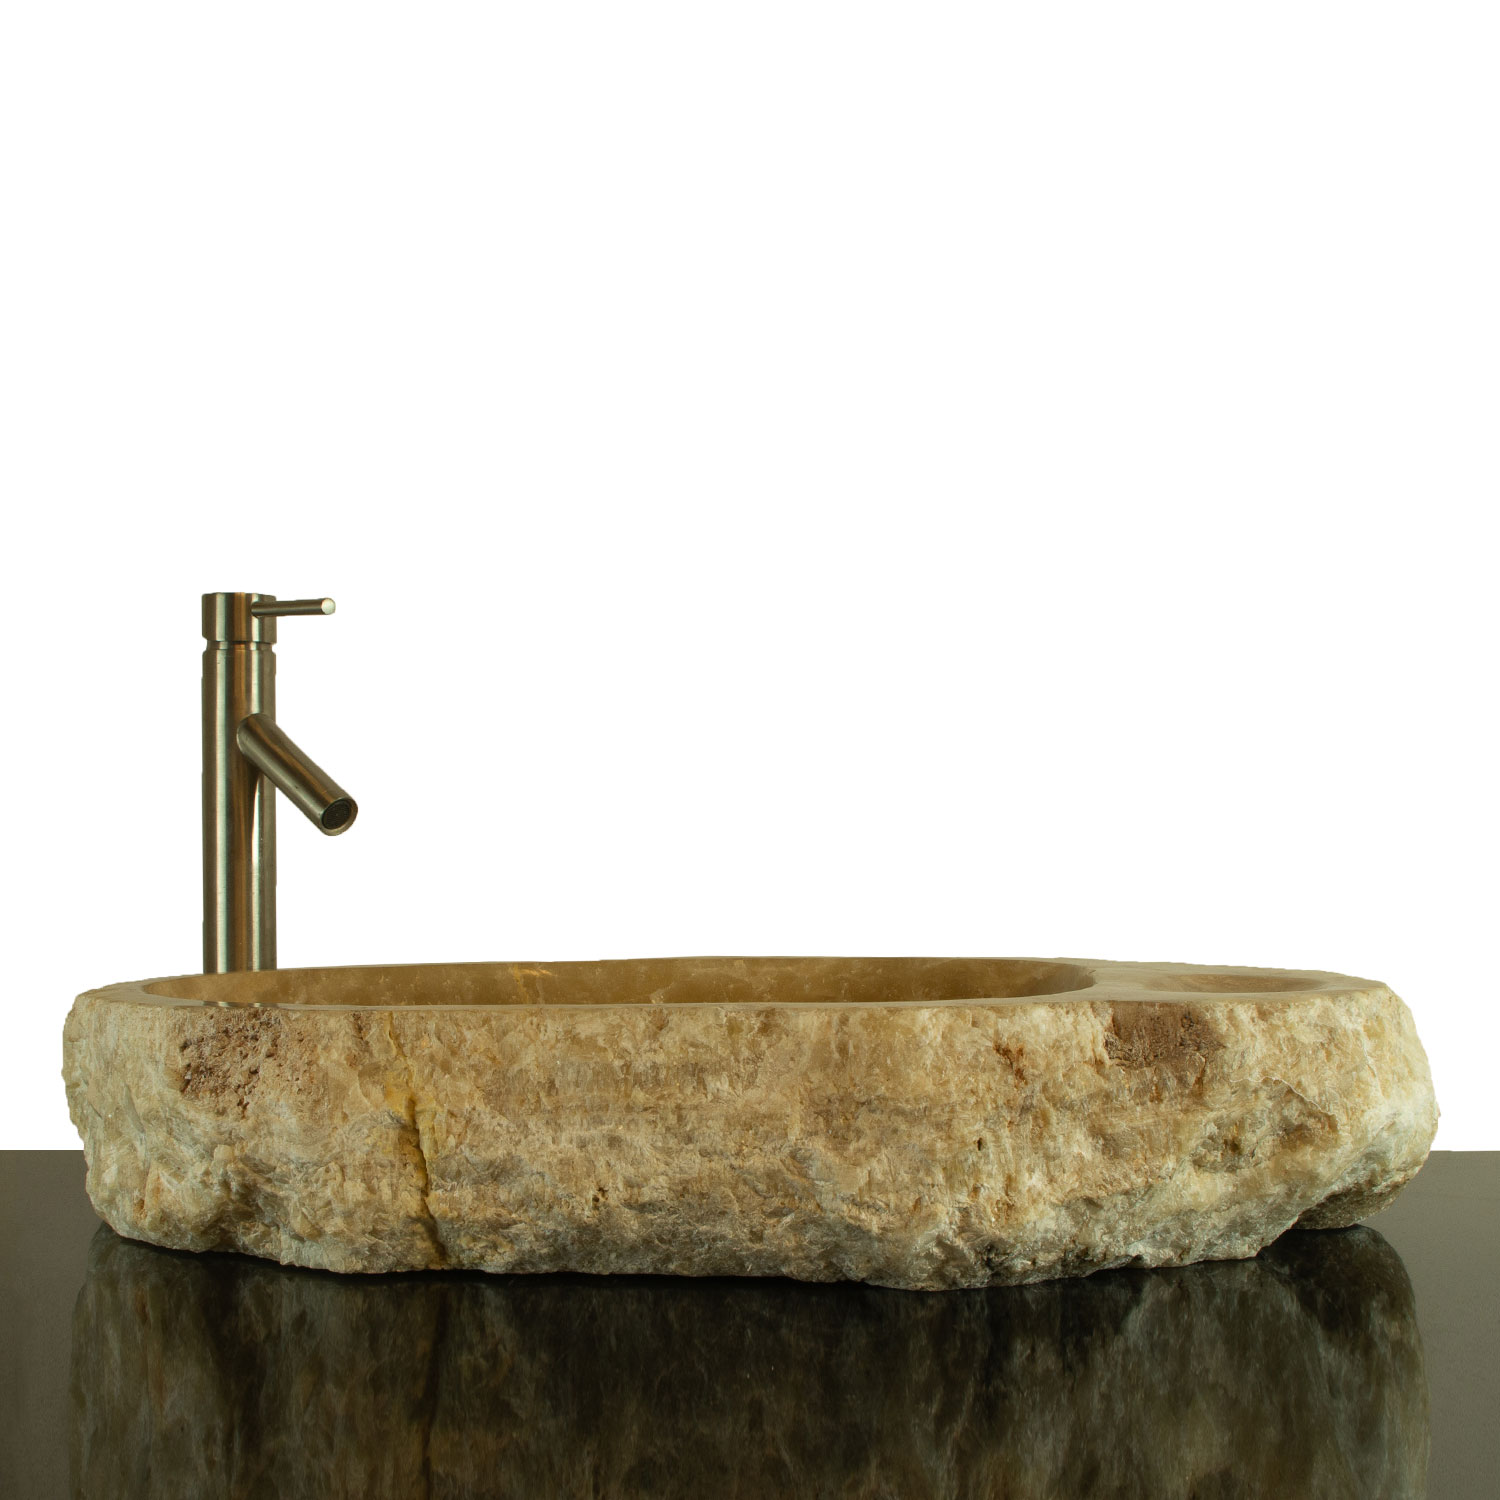 onyx marble counter top vessel sink with soap dish onxtdd 02 the kings bay